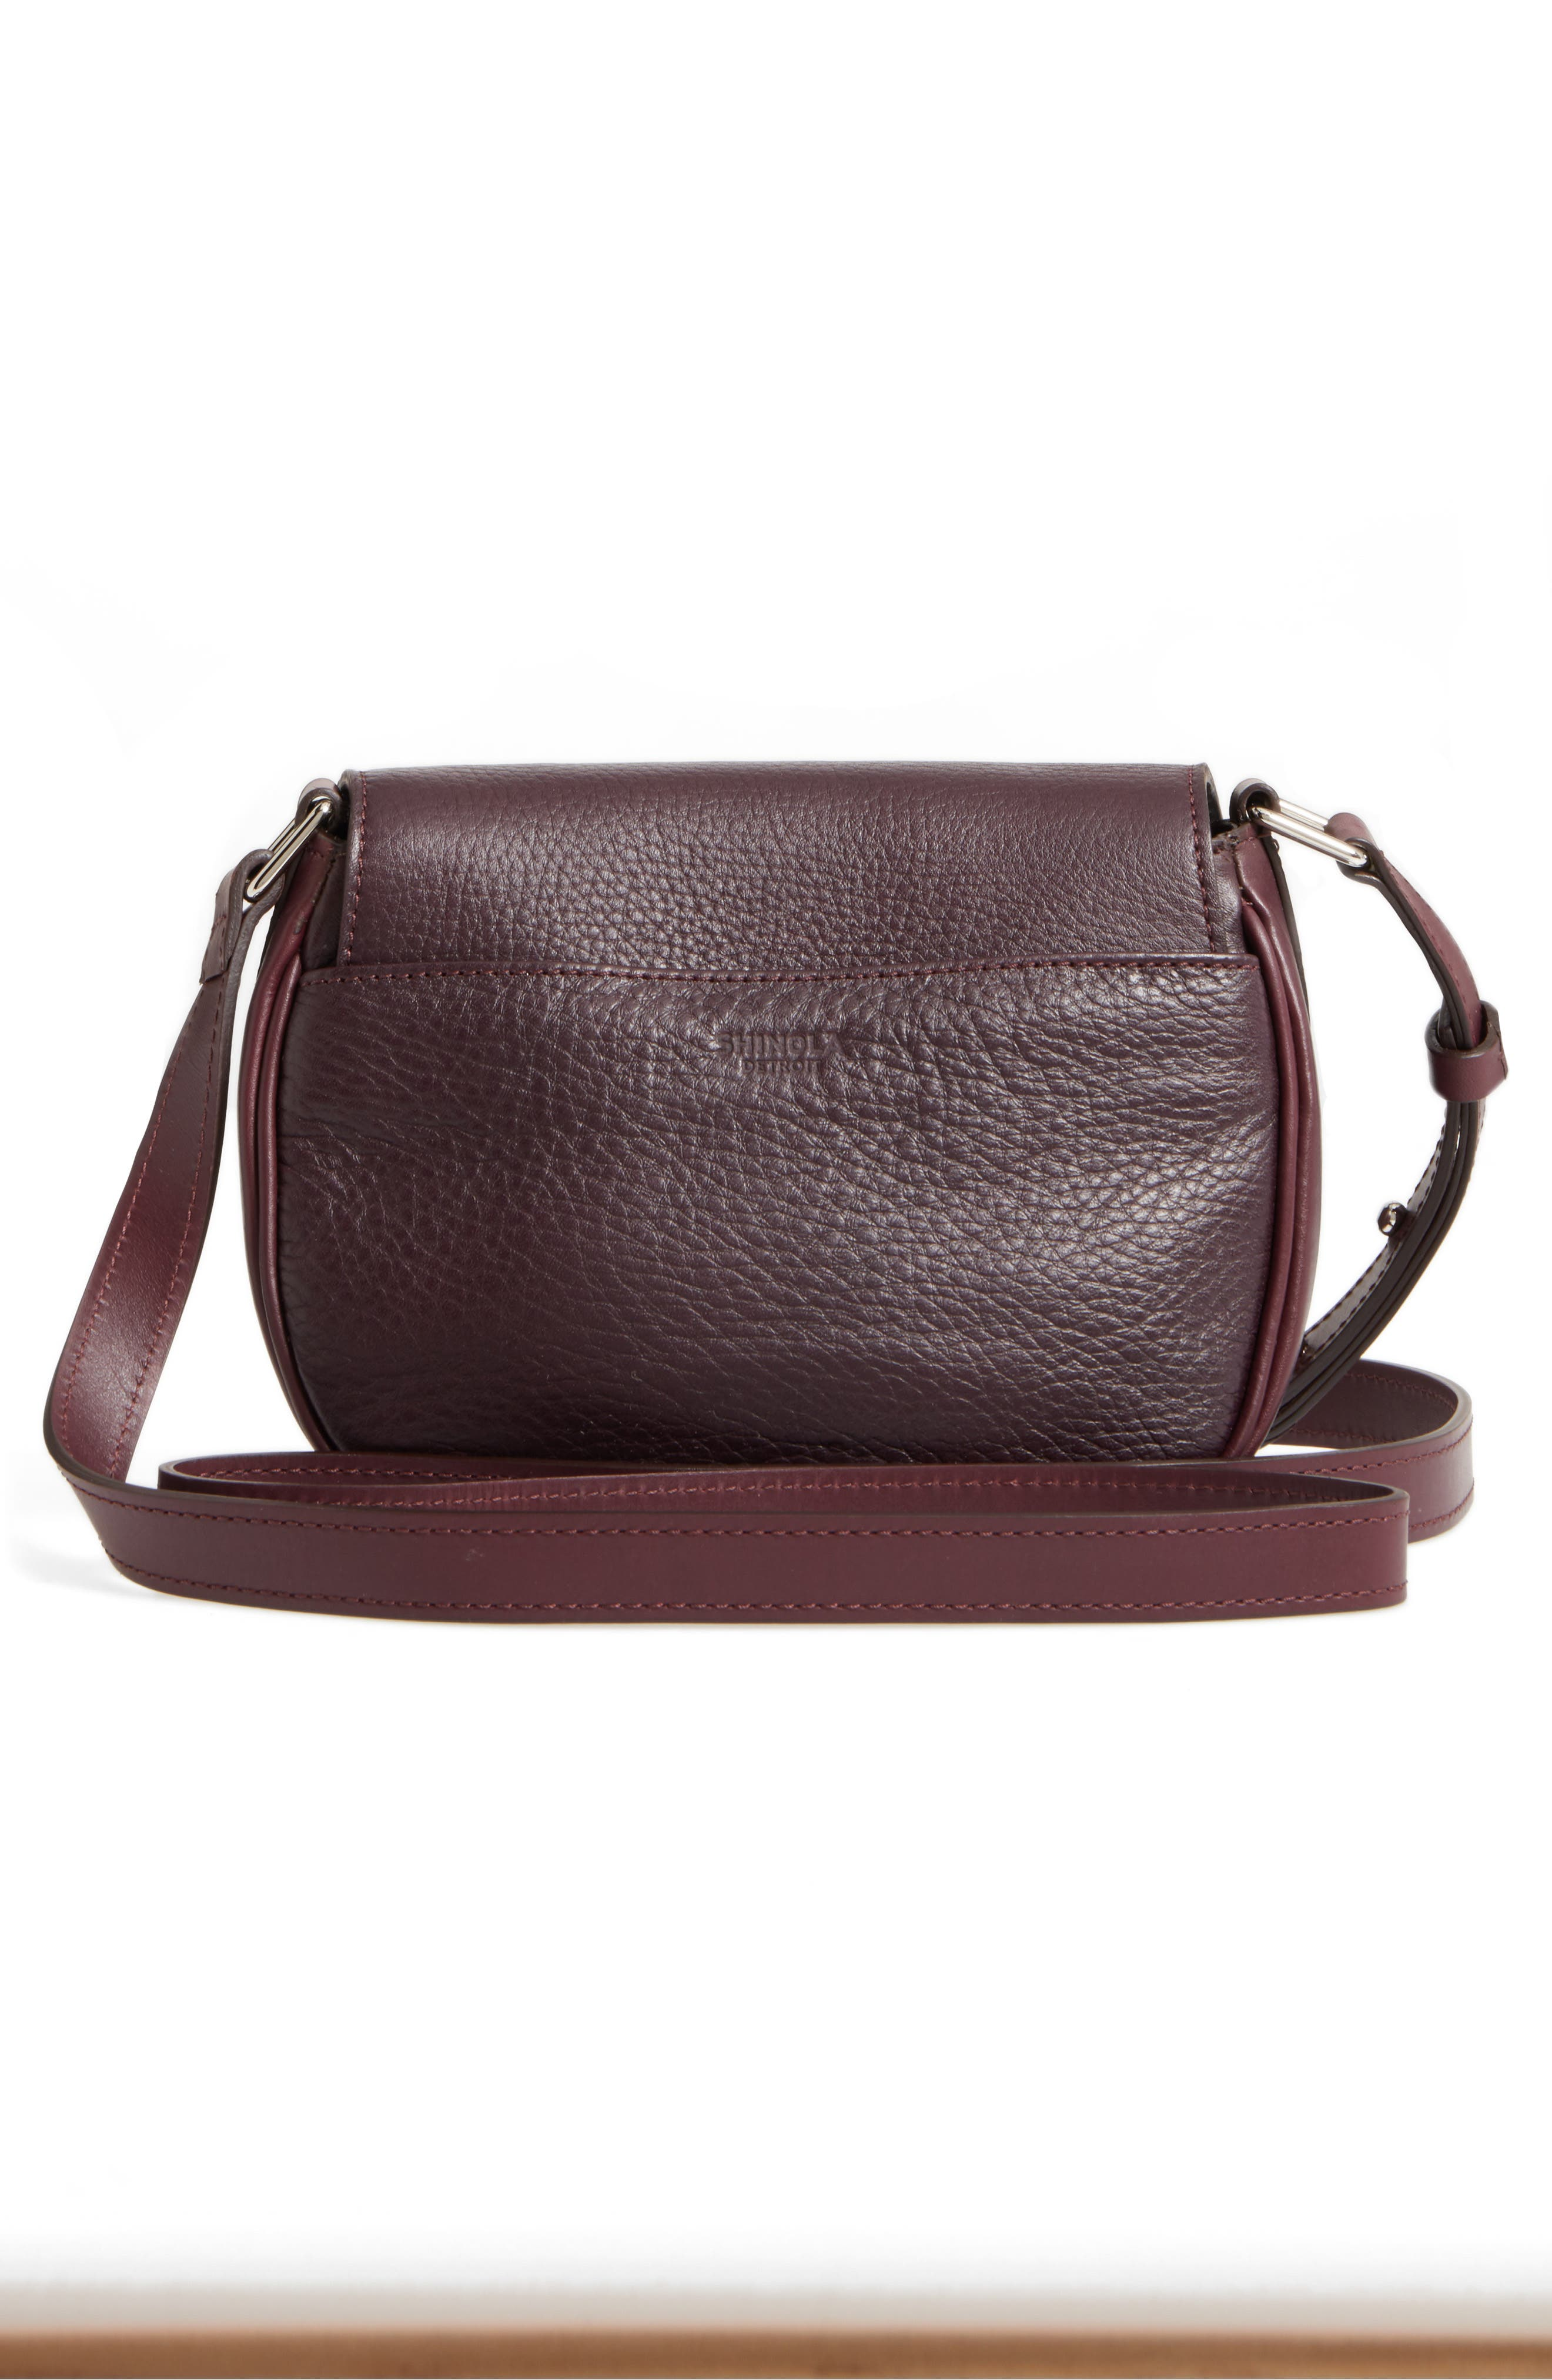 Calfskin Leather Shoulder Bag,                             Alternate thumbnail 3, color,                             Aubergine